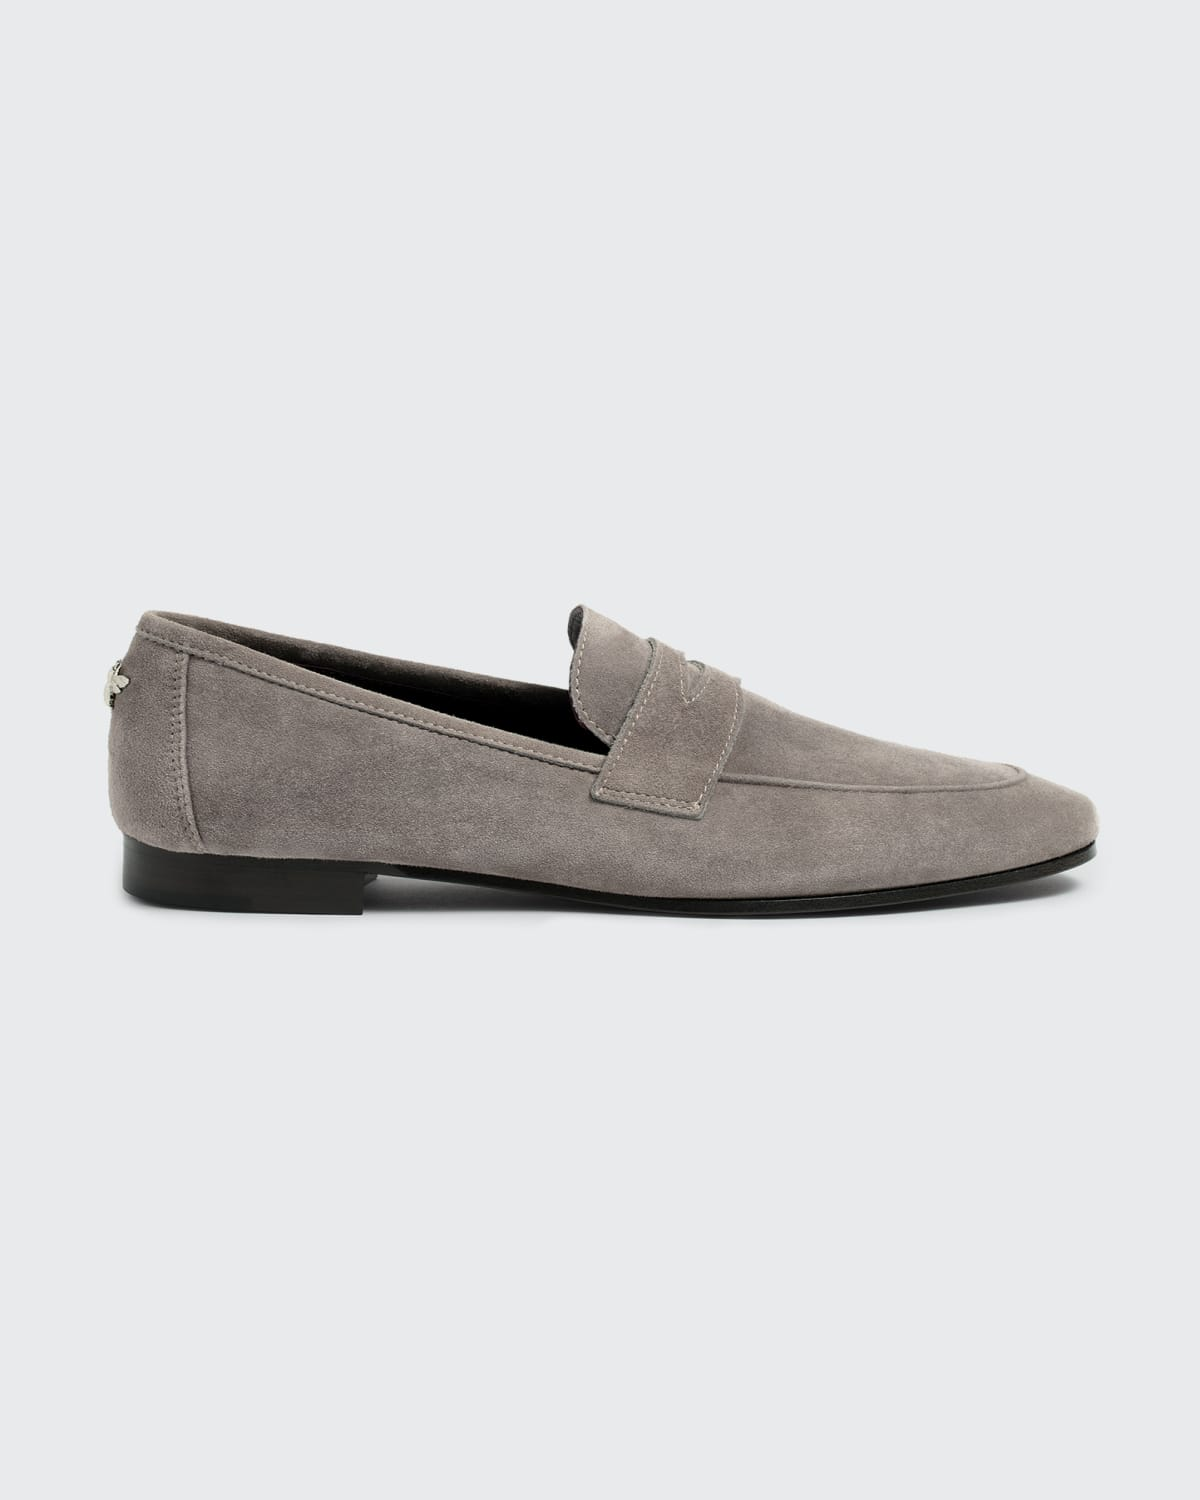 Suede Flat Penny Loafers